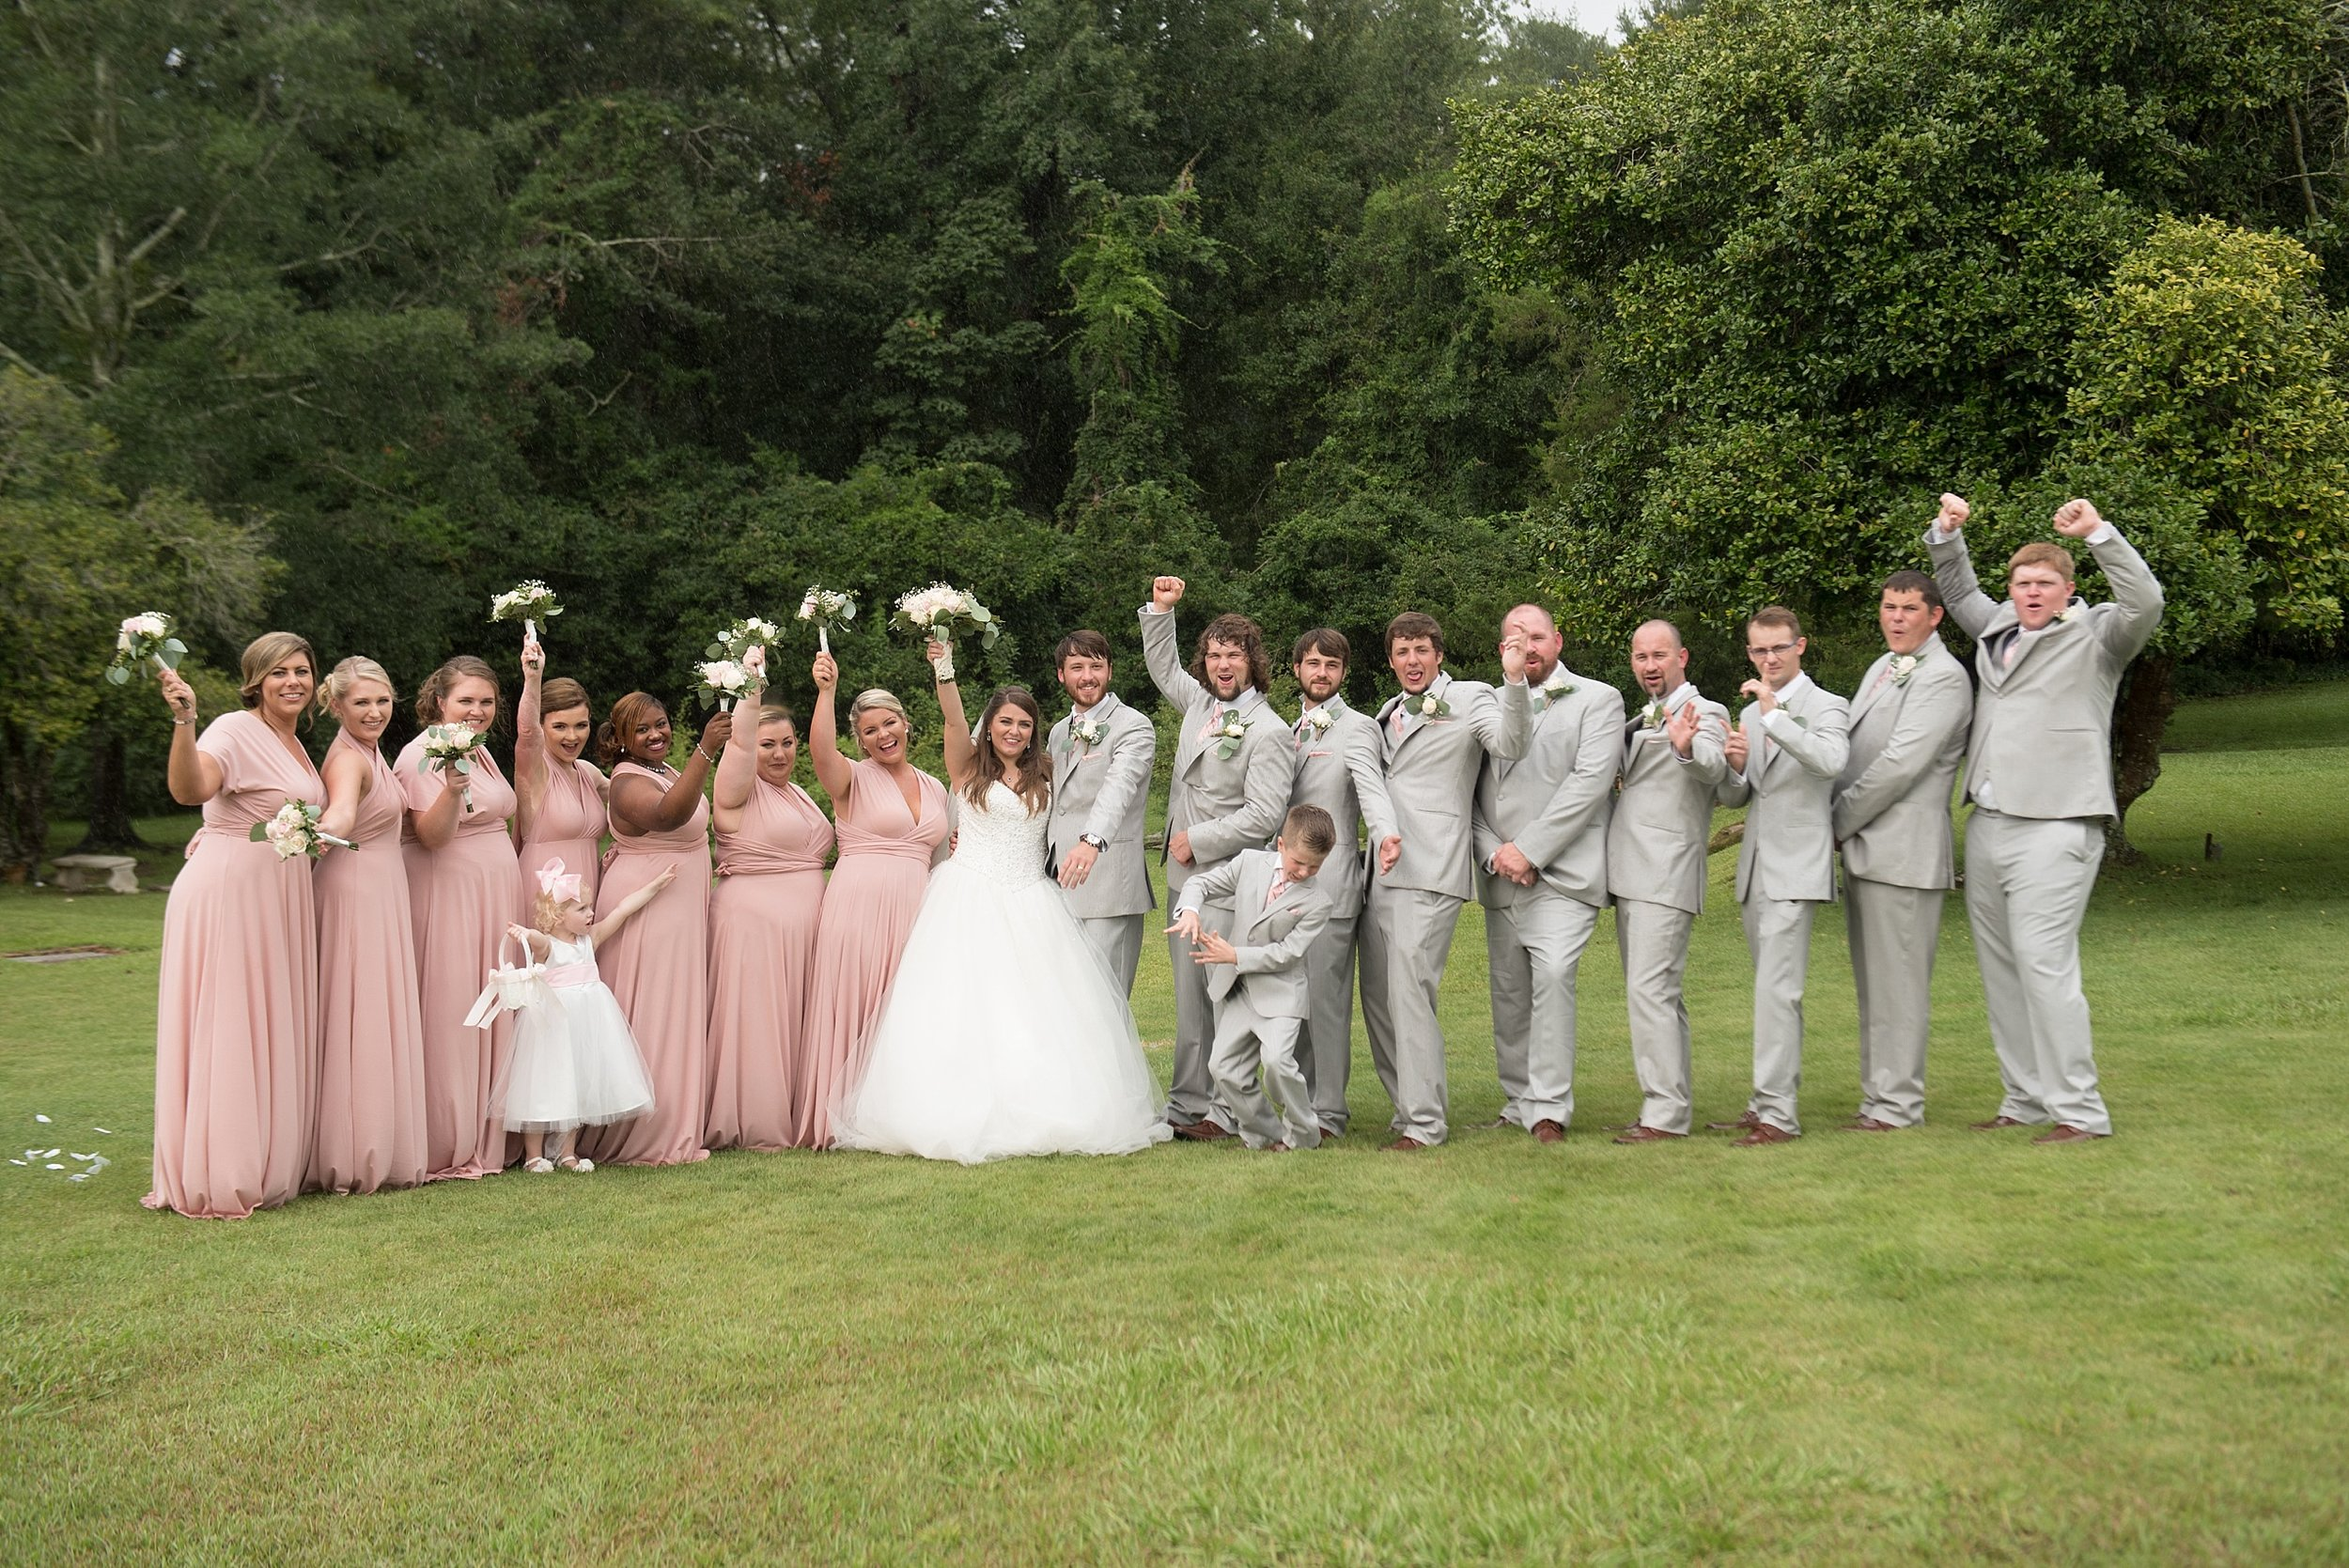 bridal party cheers for the bride and groom